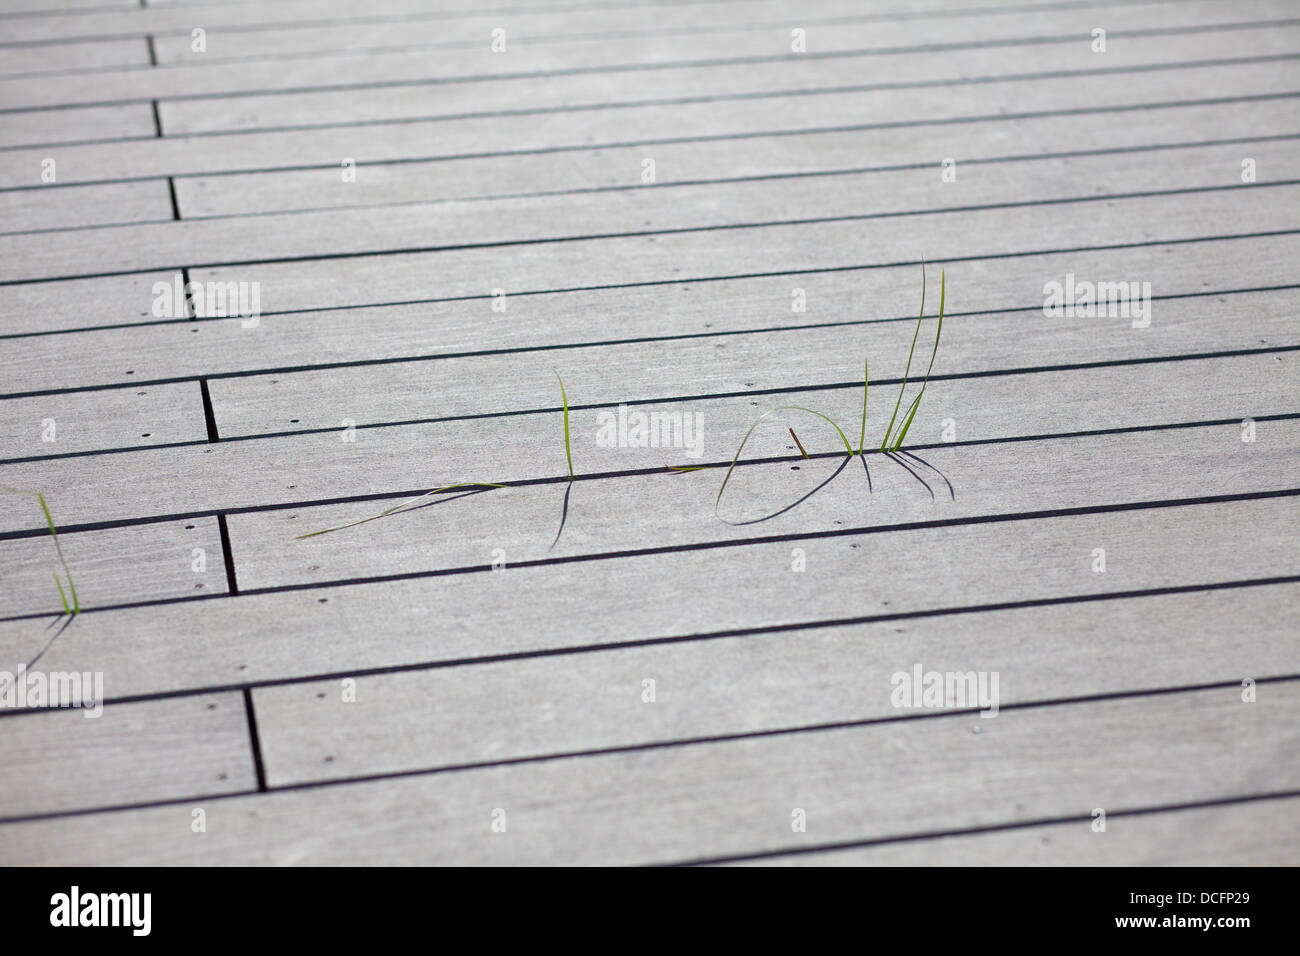 grass growing through wooden boards - Stock Image